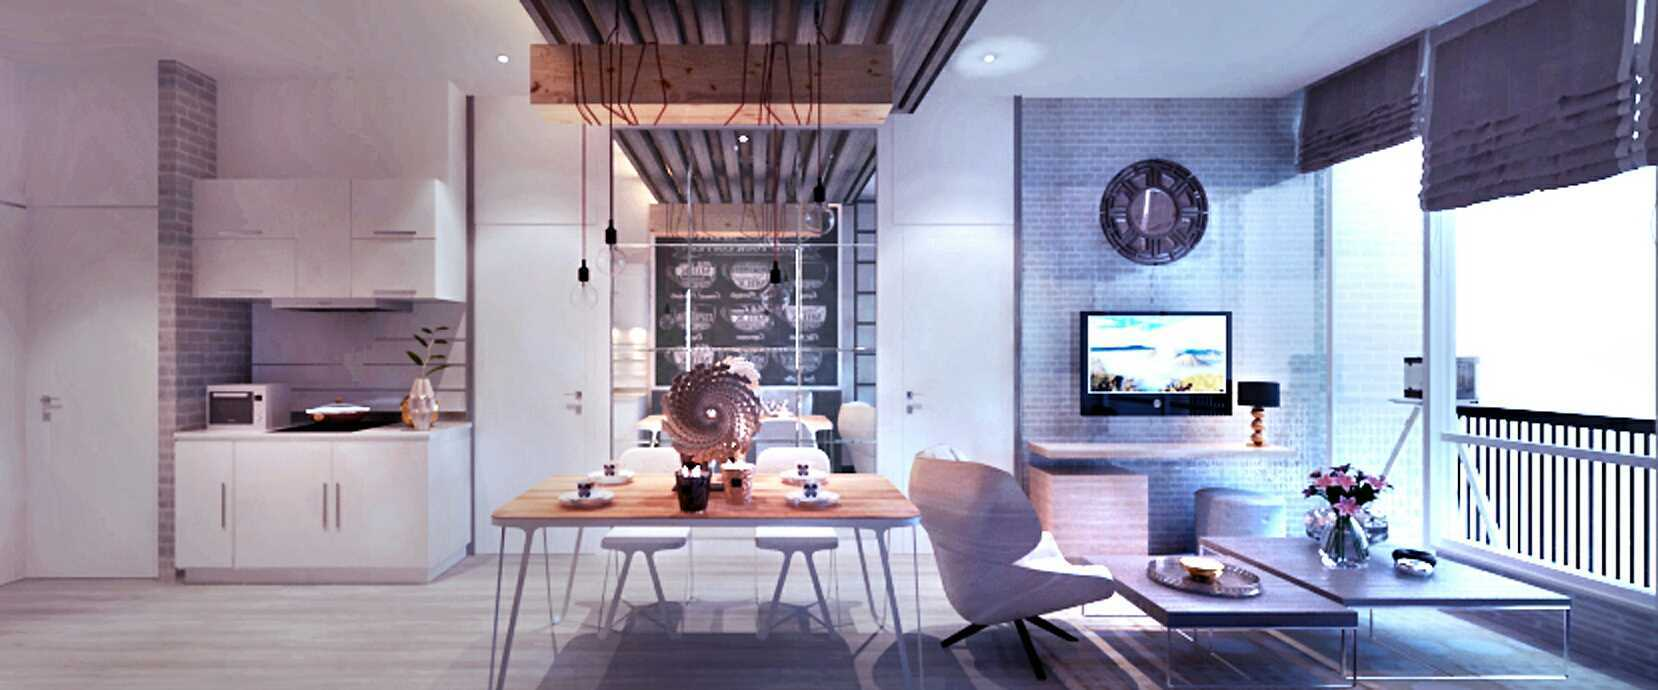 Rinto Katili, S.s.n, M.m Industrial Style Apartment Jakarta Jakarta Small Industrial Apartment_View To Pantry Industrial  24816